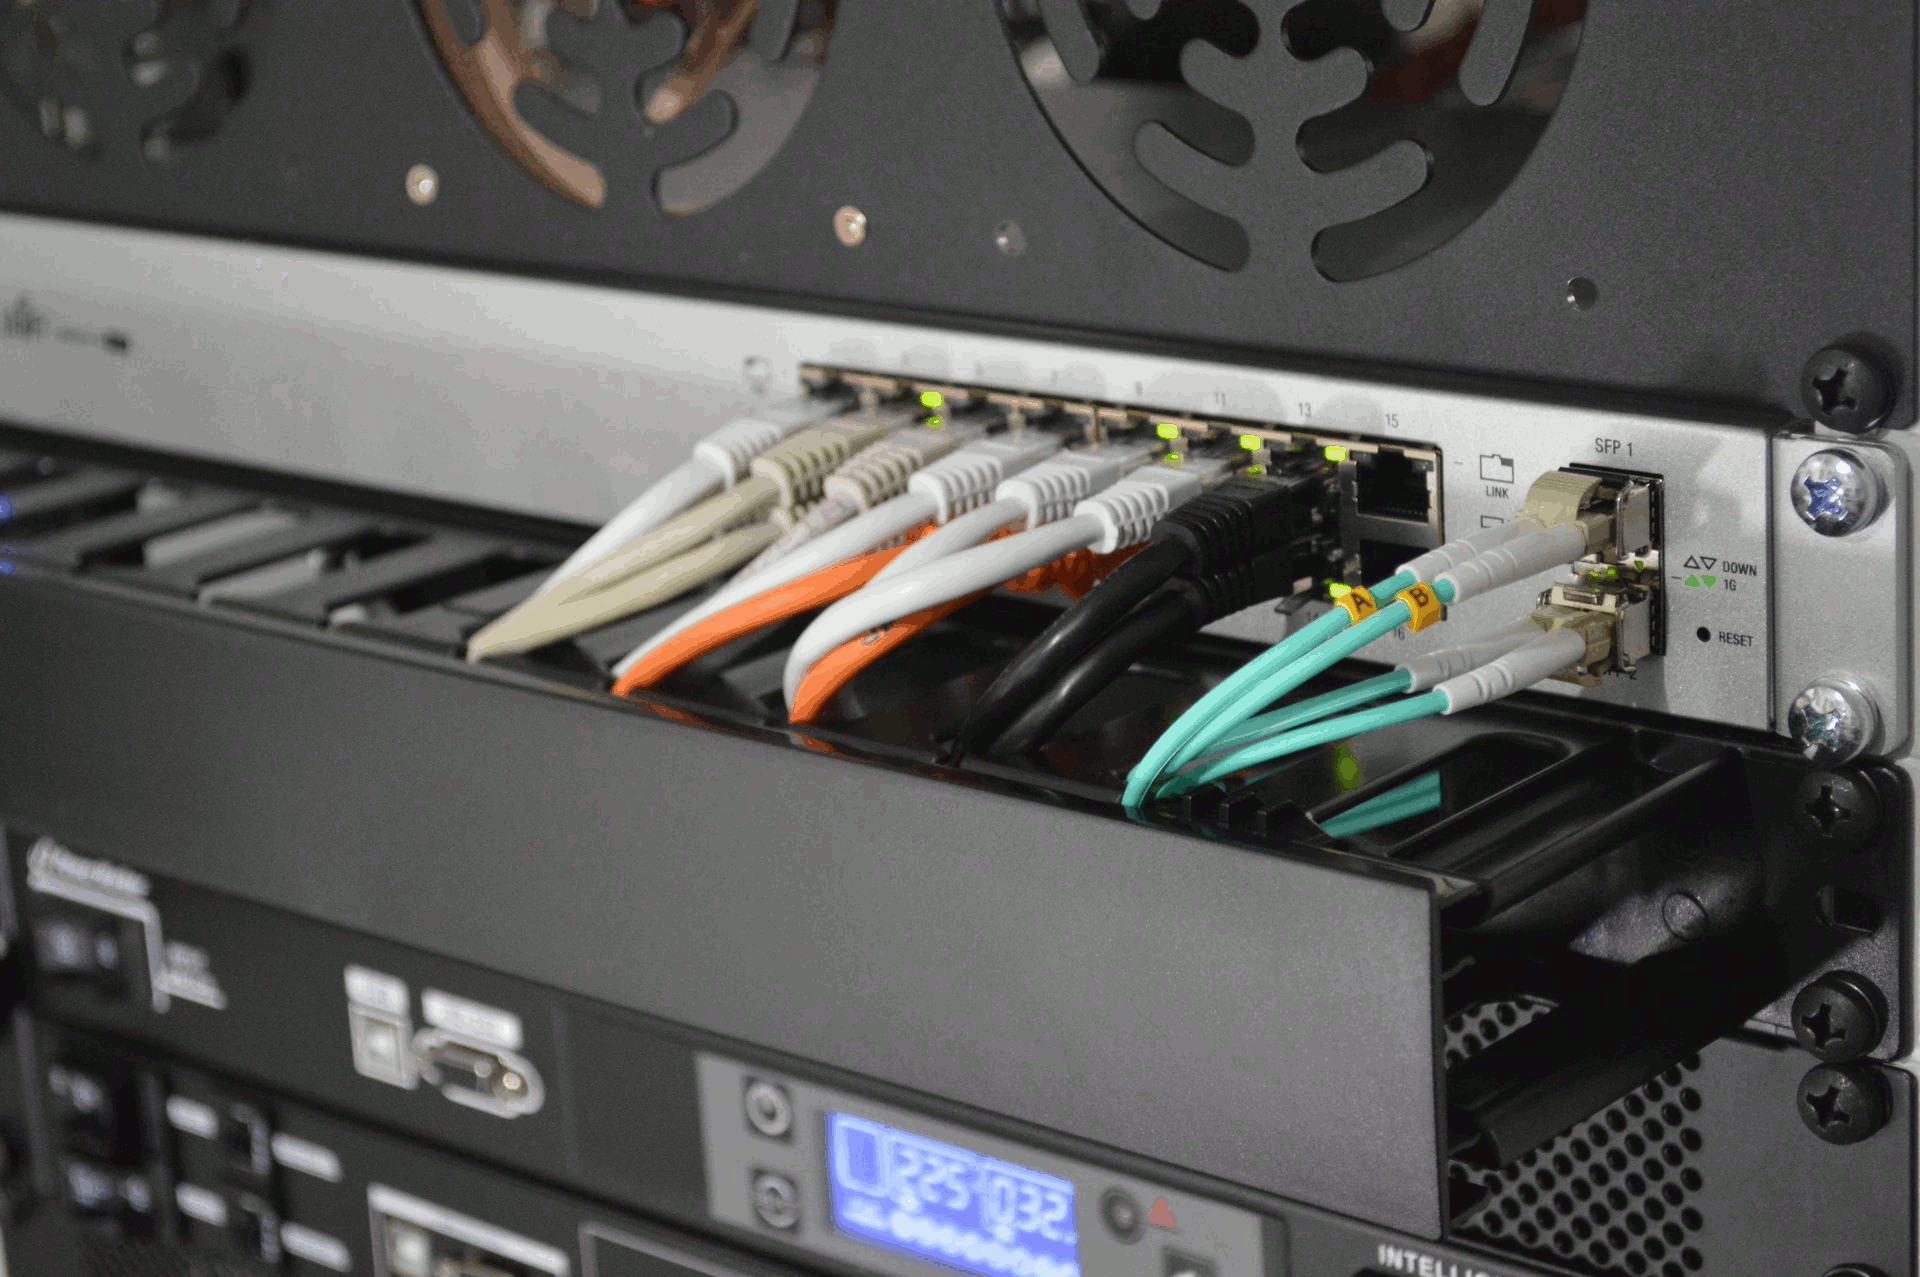 A computer network switch